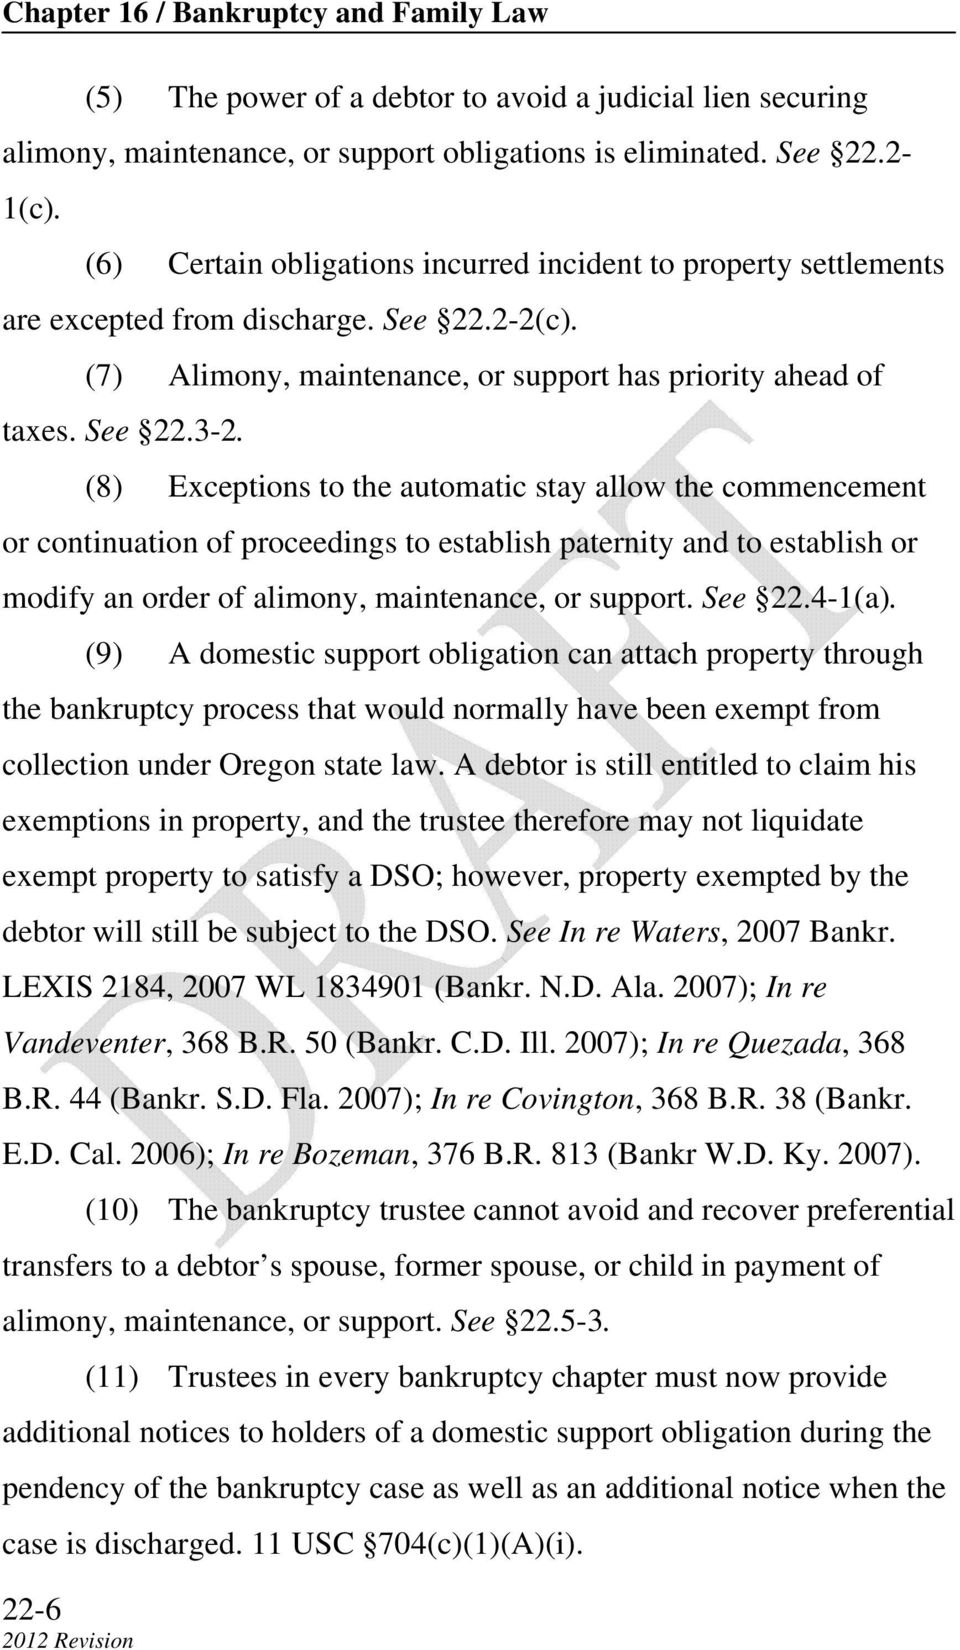 (8) Exceptions to the automatic stay allow the commencement or continuation of proceedings to establish paternity and to establish or modify an order of alimony, maintenance, or support. See 22.